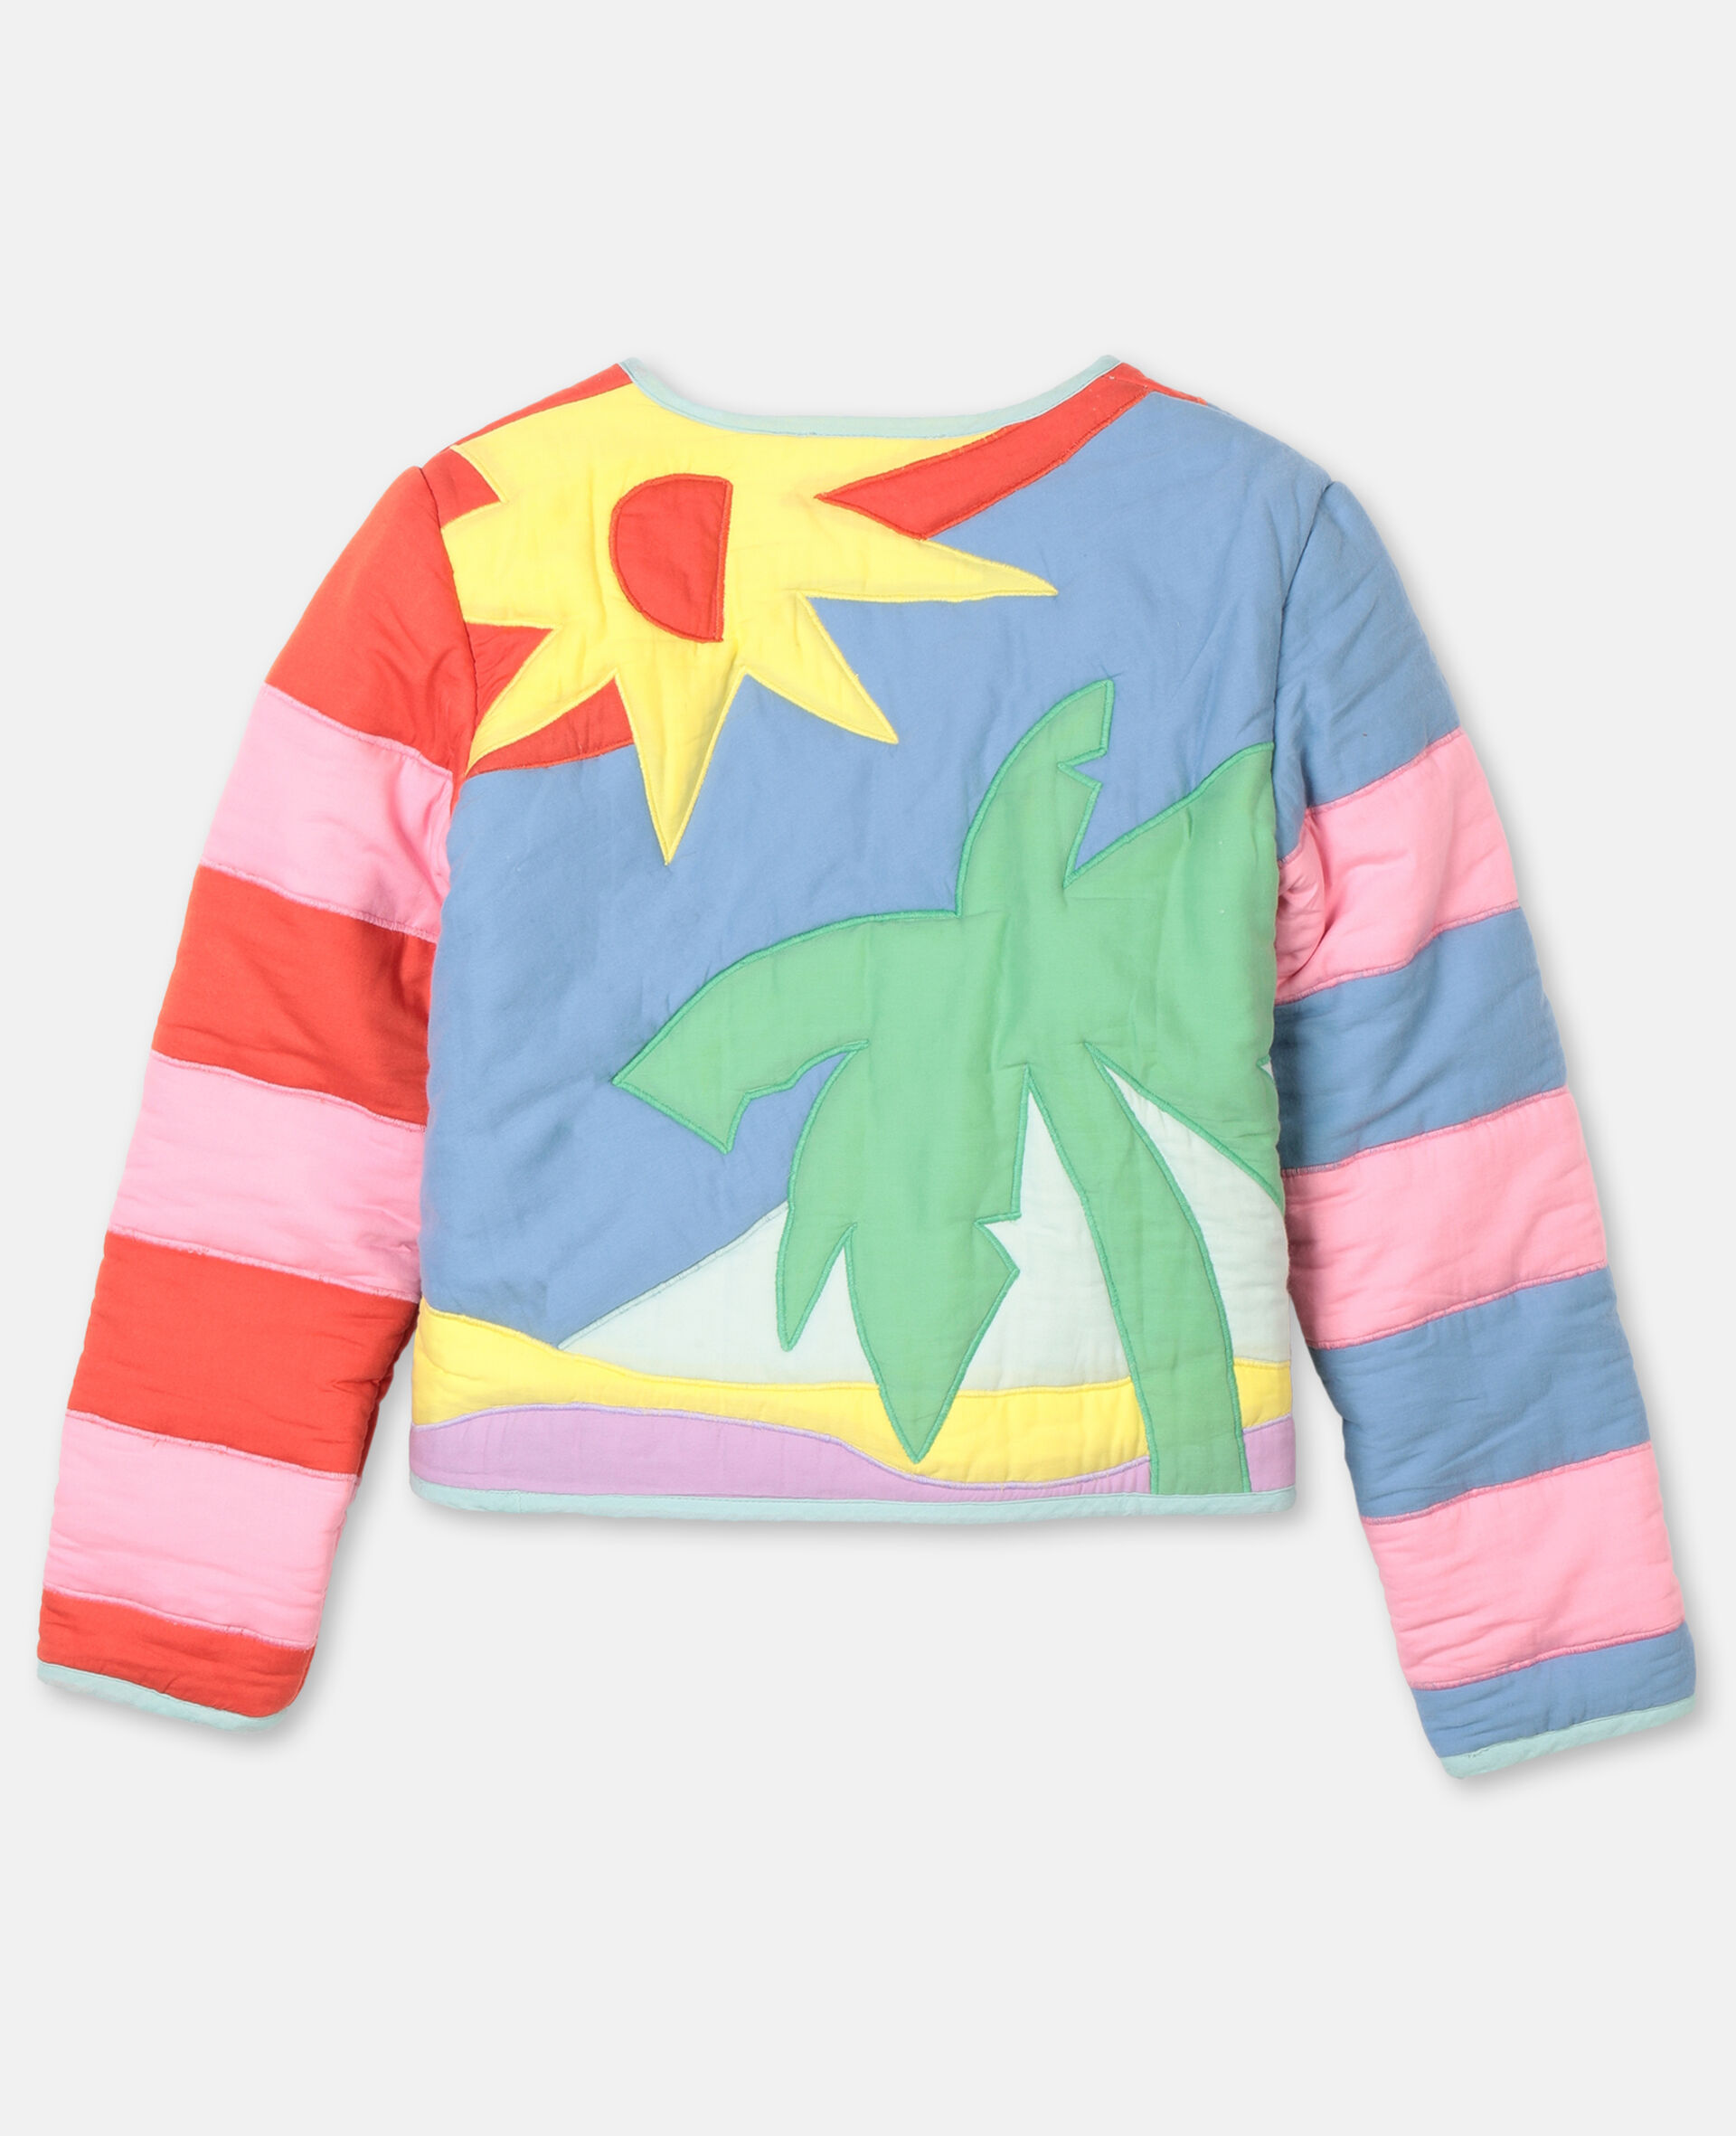 Palms Patches Cotton Jacket -Multicoloured-large image number 3